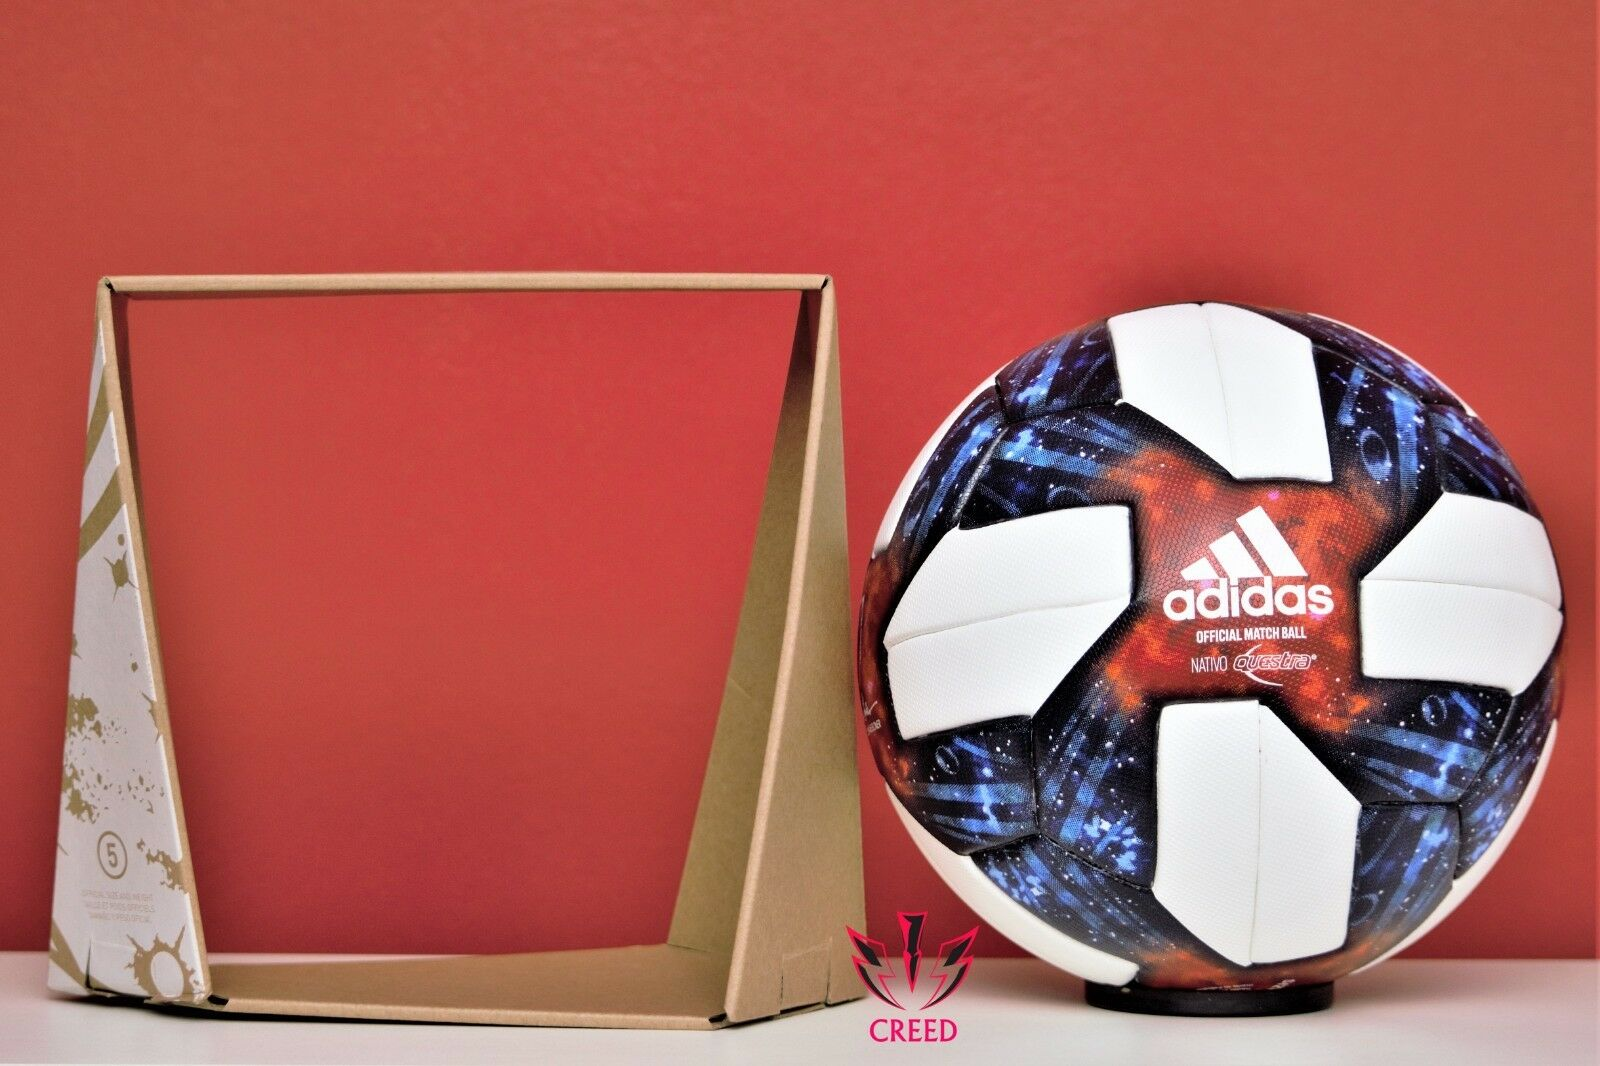 bd37b6c4f adidas Nativo Questra 2019 Official Match Ball Major Soccer League ...